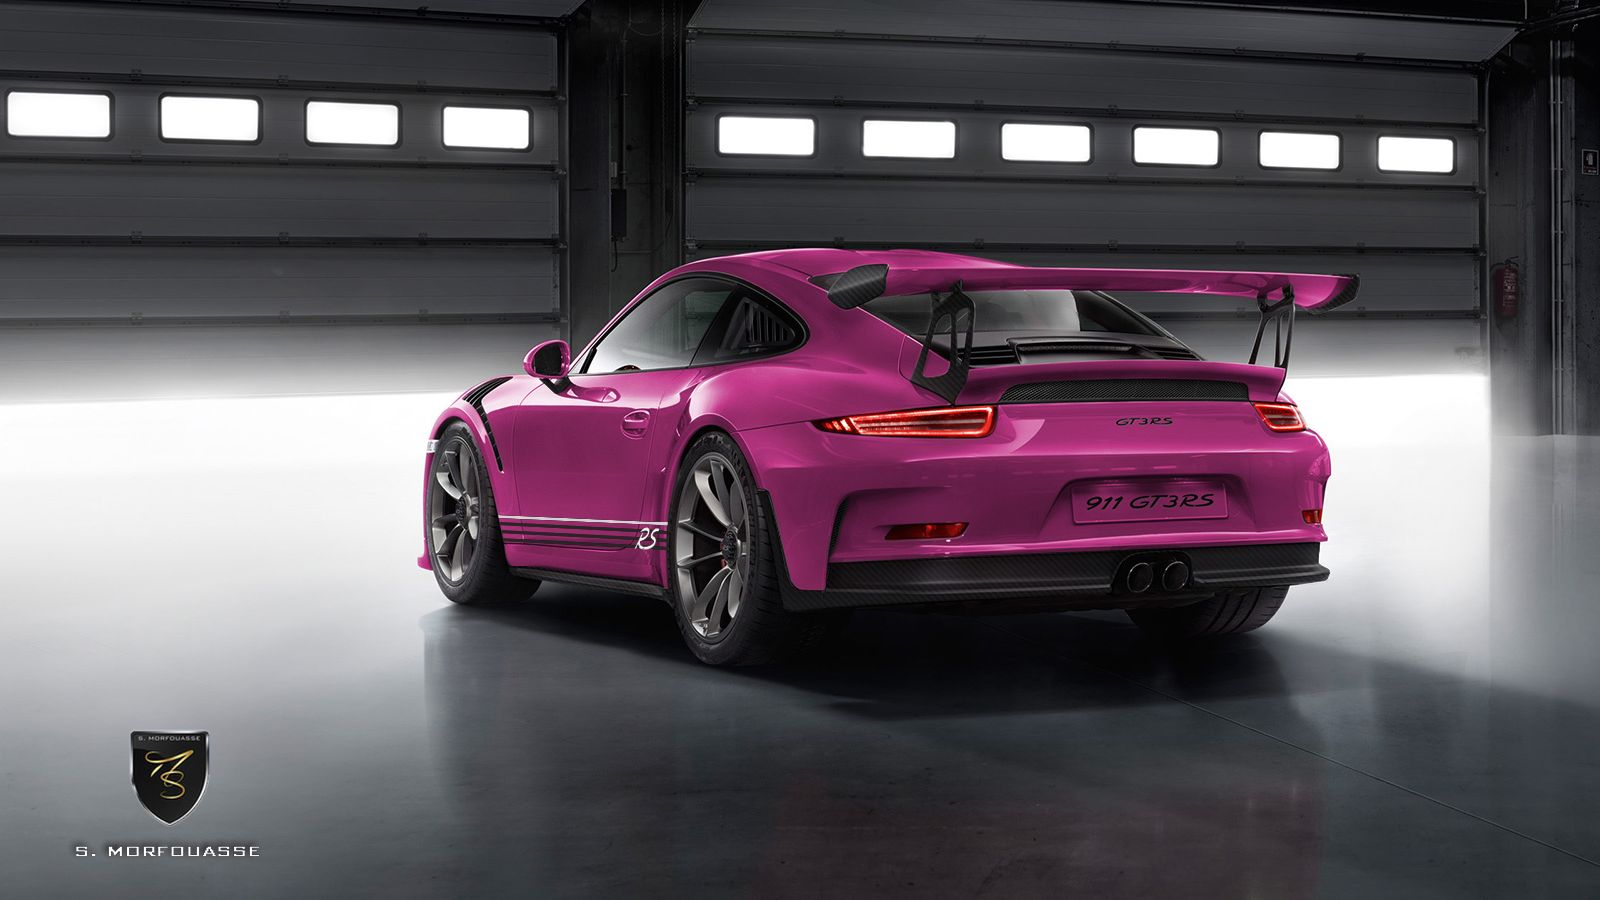 911 Carrera Gts >> Porsche 911 GT3 RS by Porsche Exclusive Rendered ...